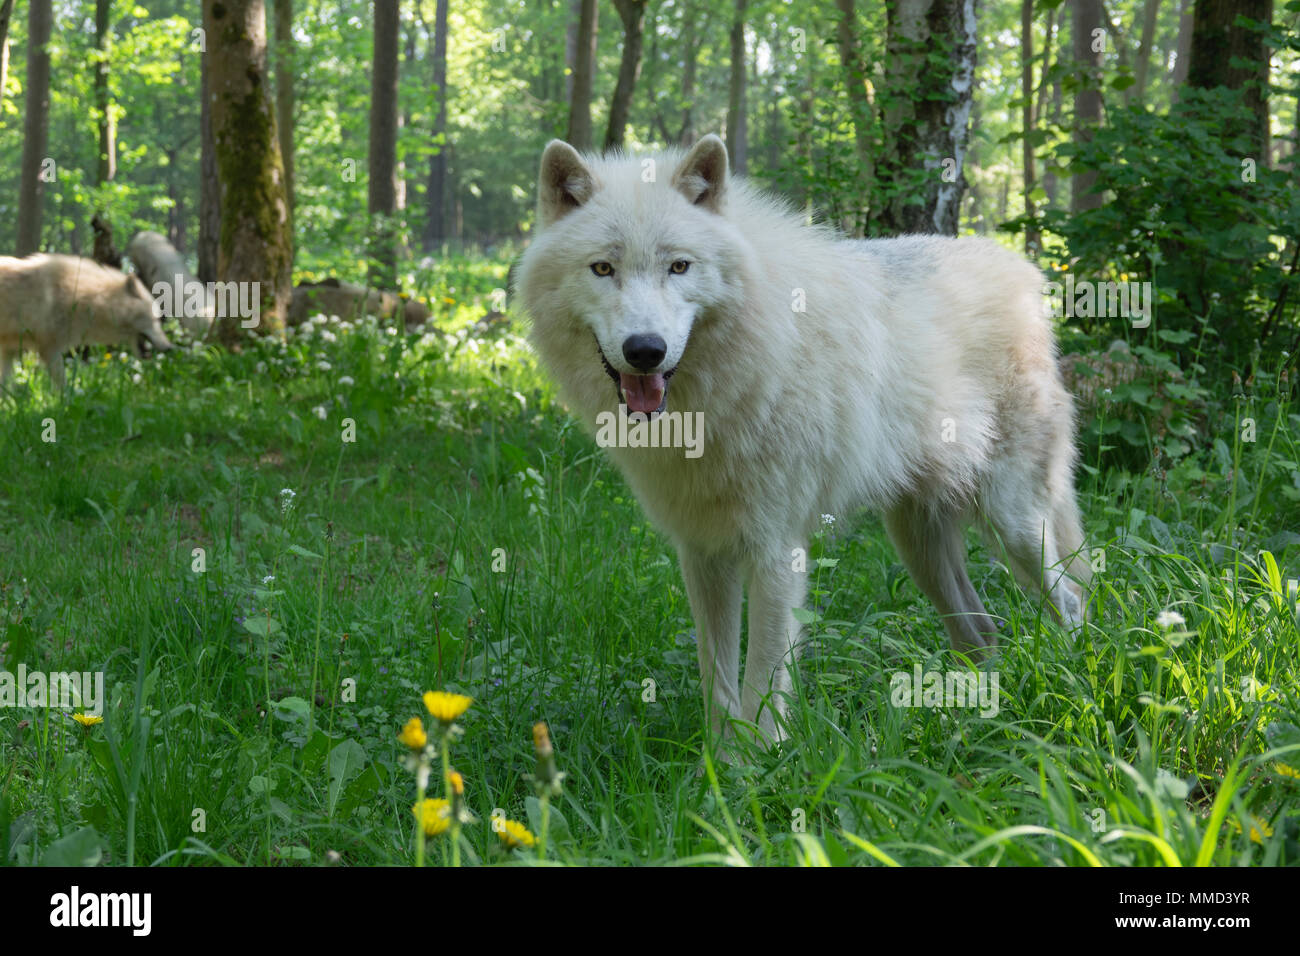 Arctic wolf in a forest - Stock Image